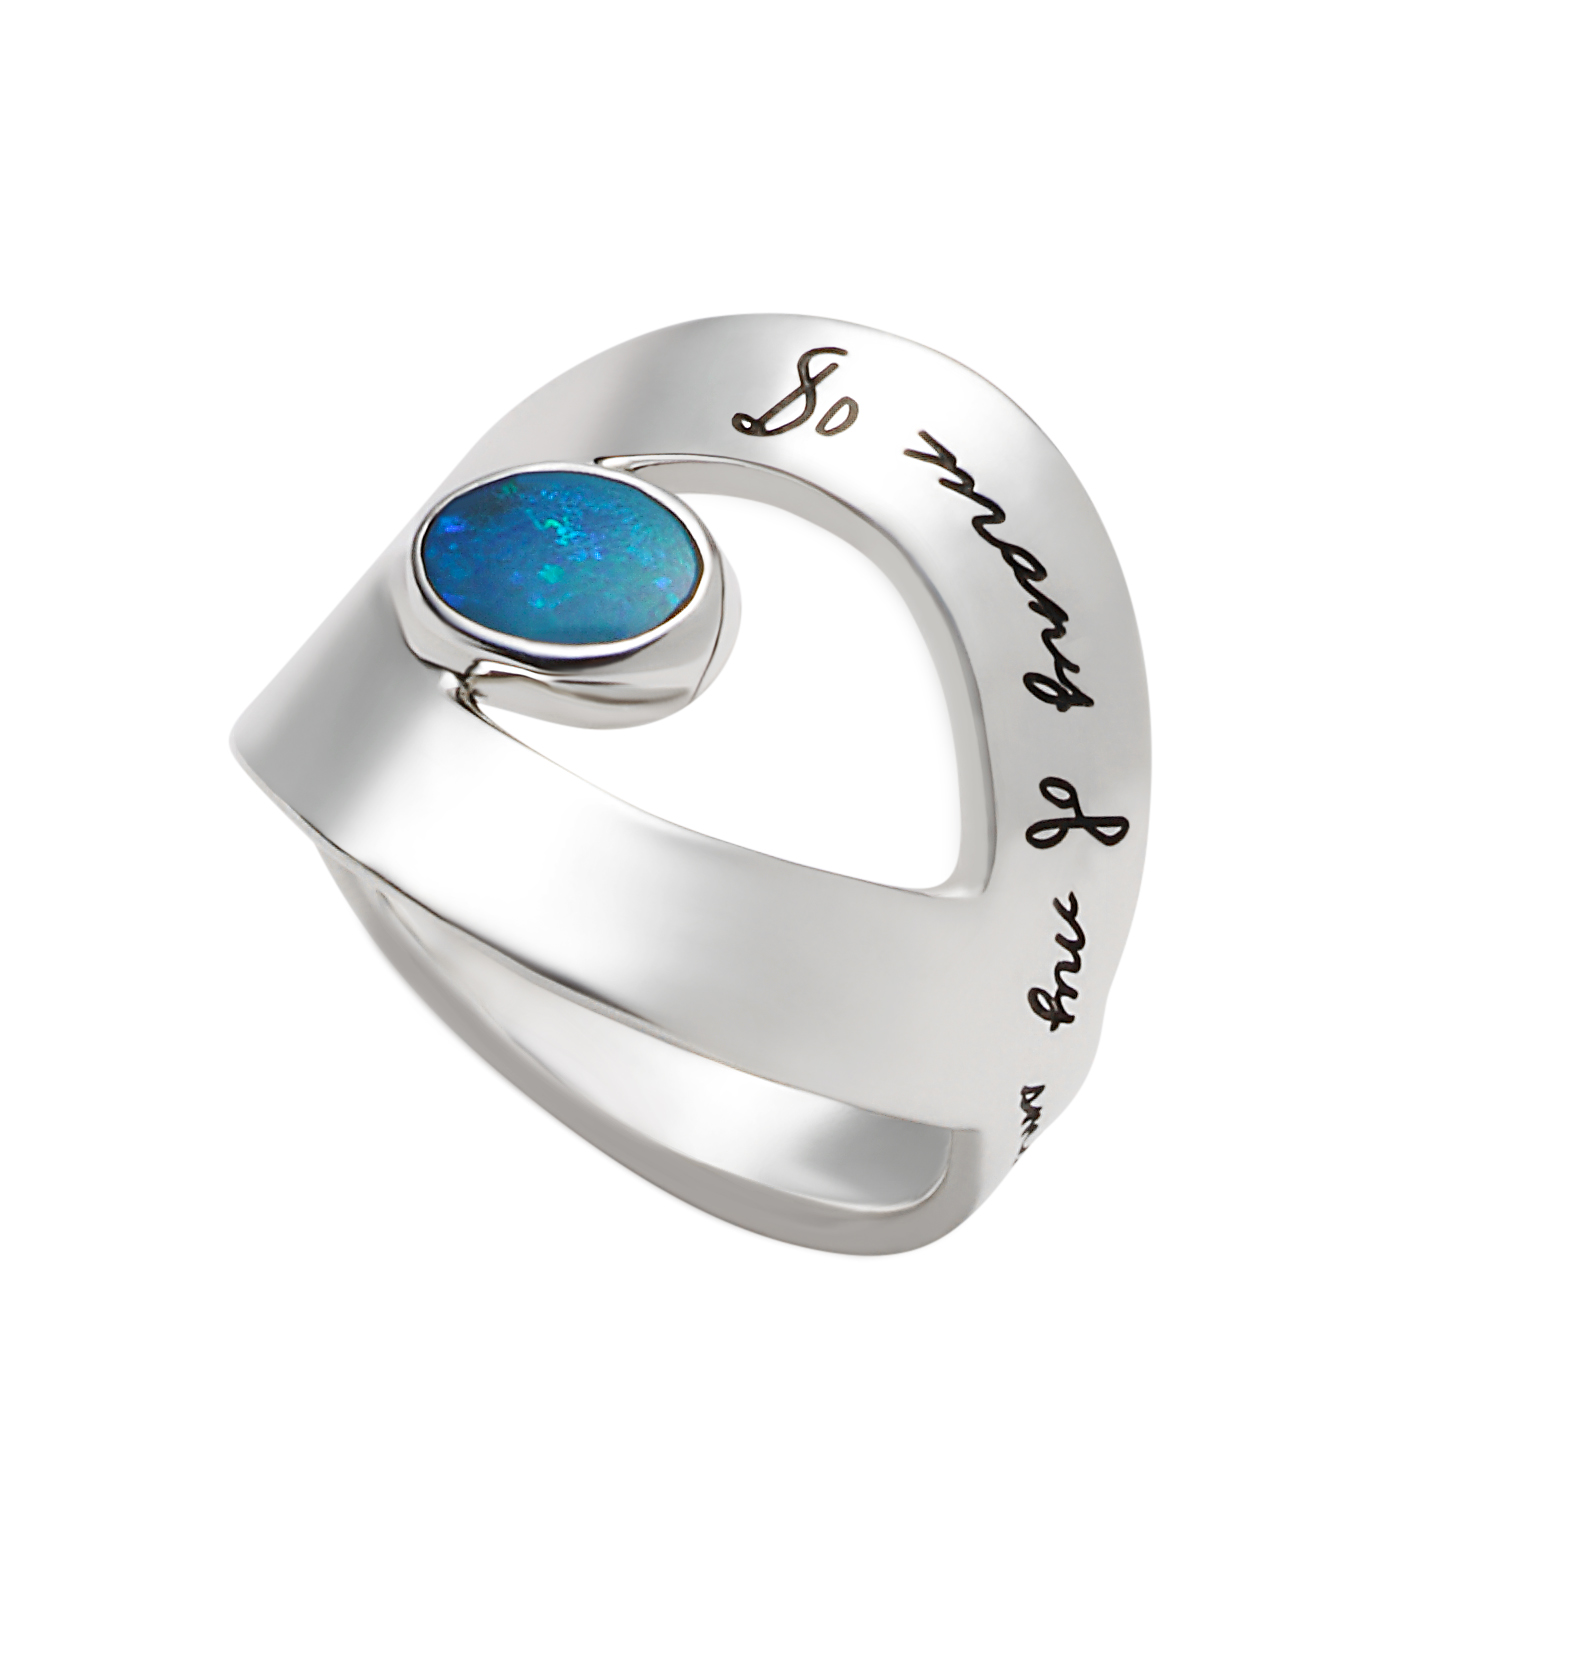 Ring with engraved quote - So many of my smiles begin with you | Inspirational Jewlery | BB Becker